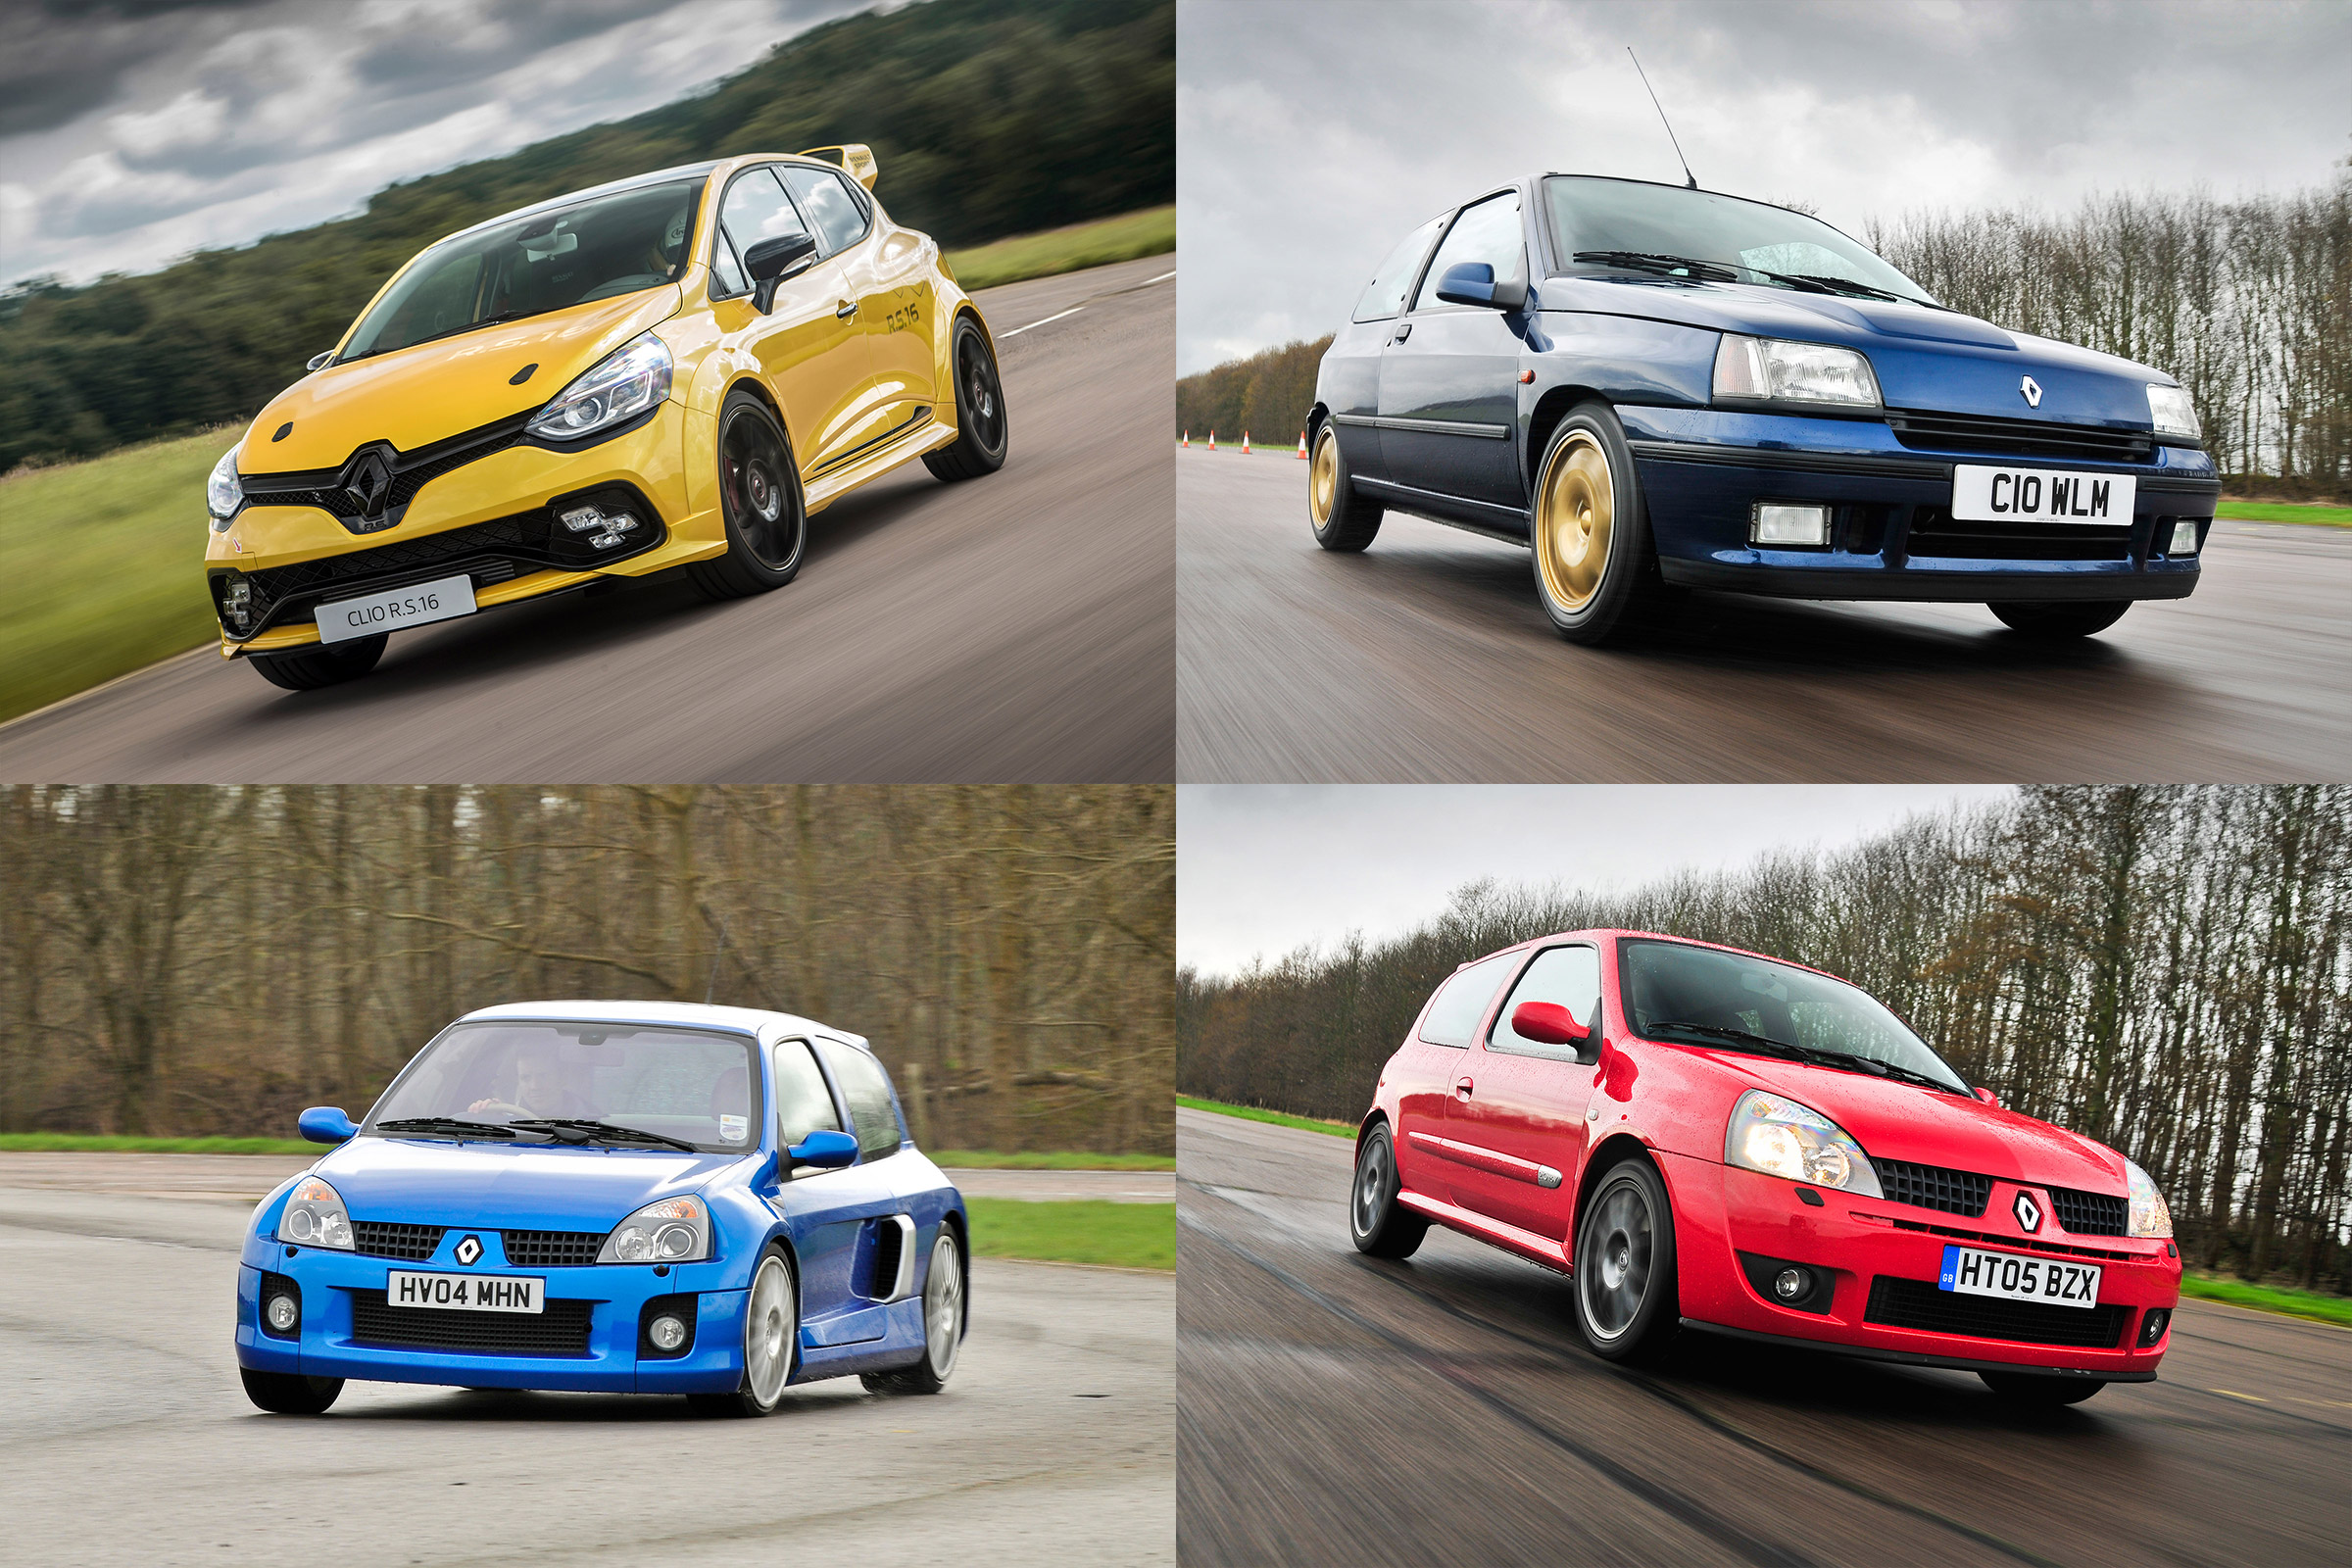 History Of The Renaultsport Clio Auto Express